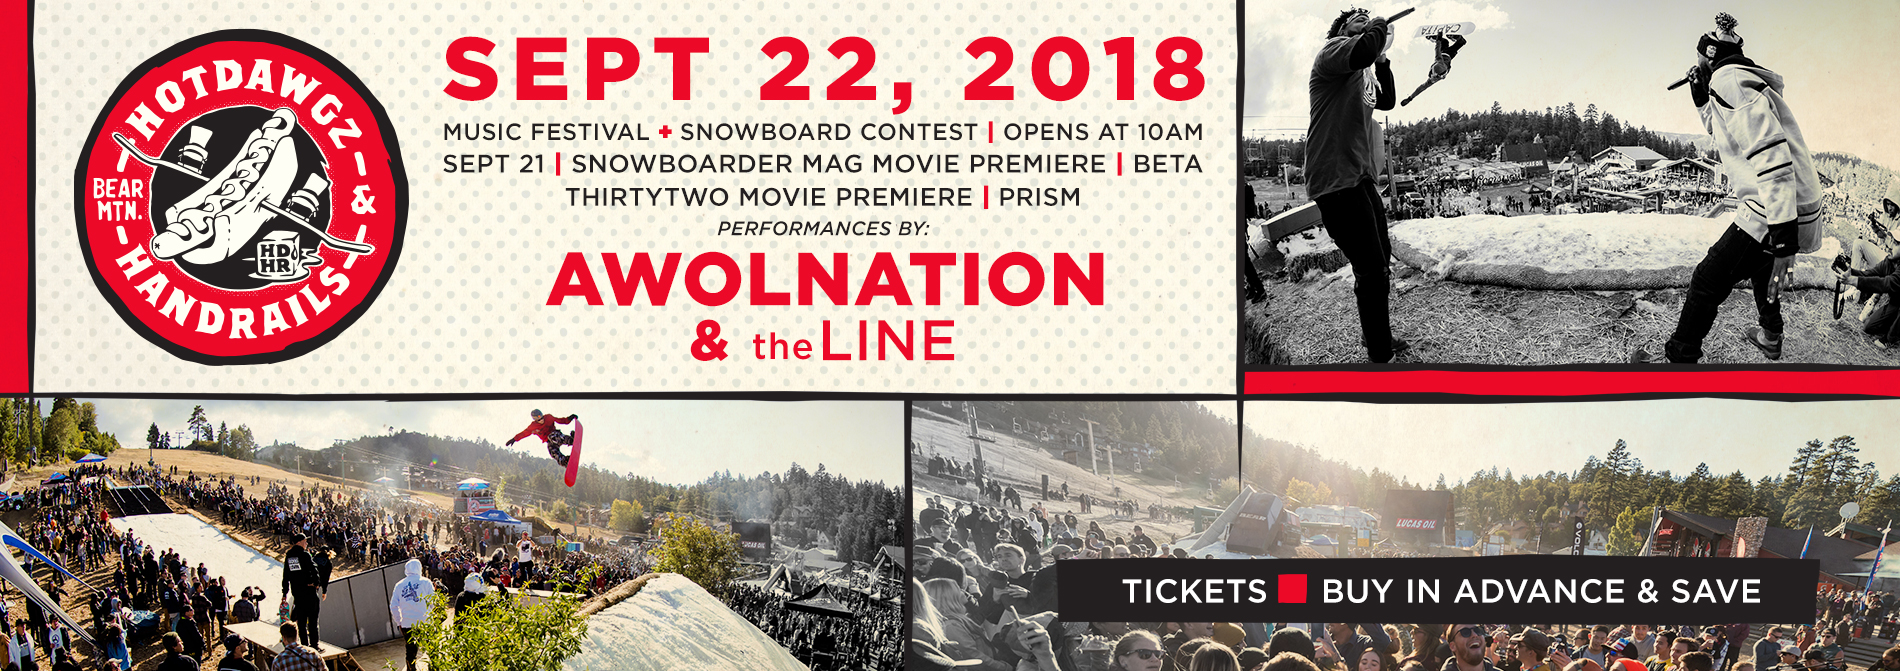 Hot Dawgz & Hand Rails 2018, Sept. 22